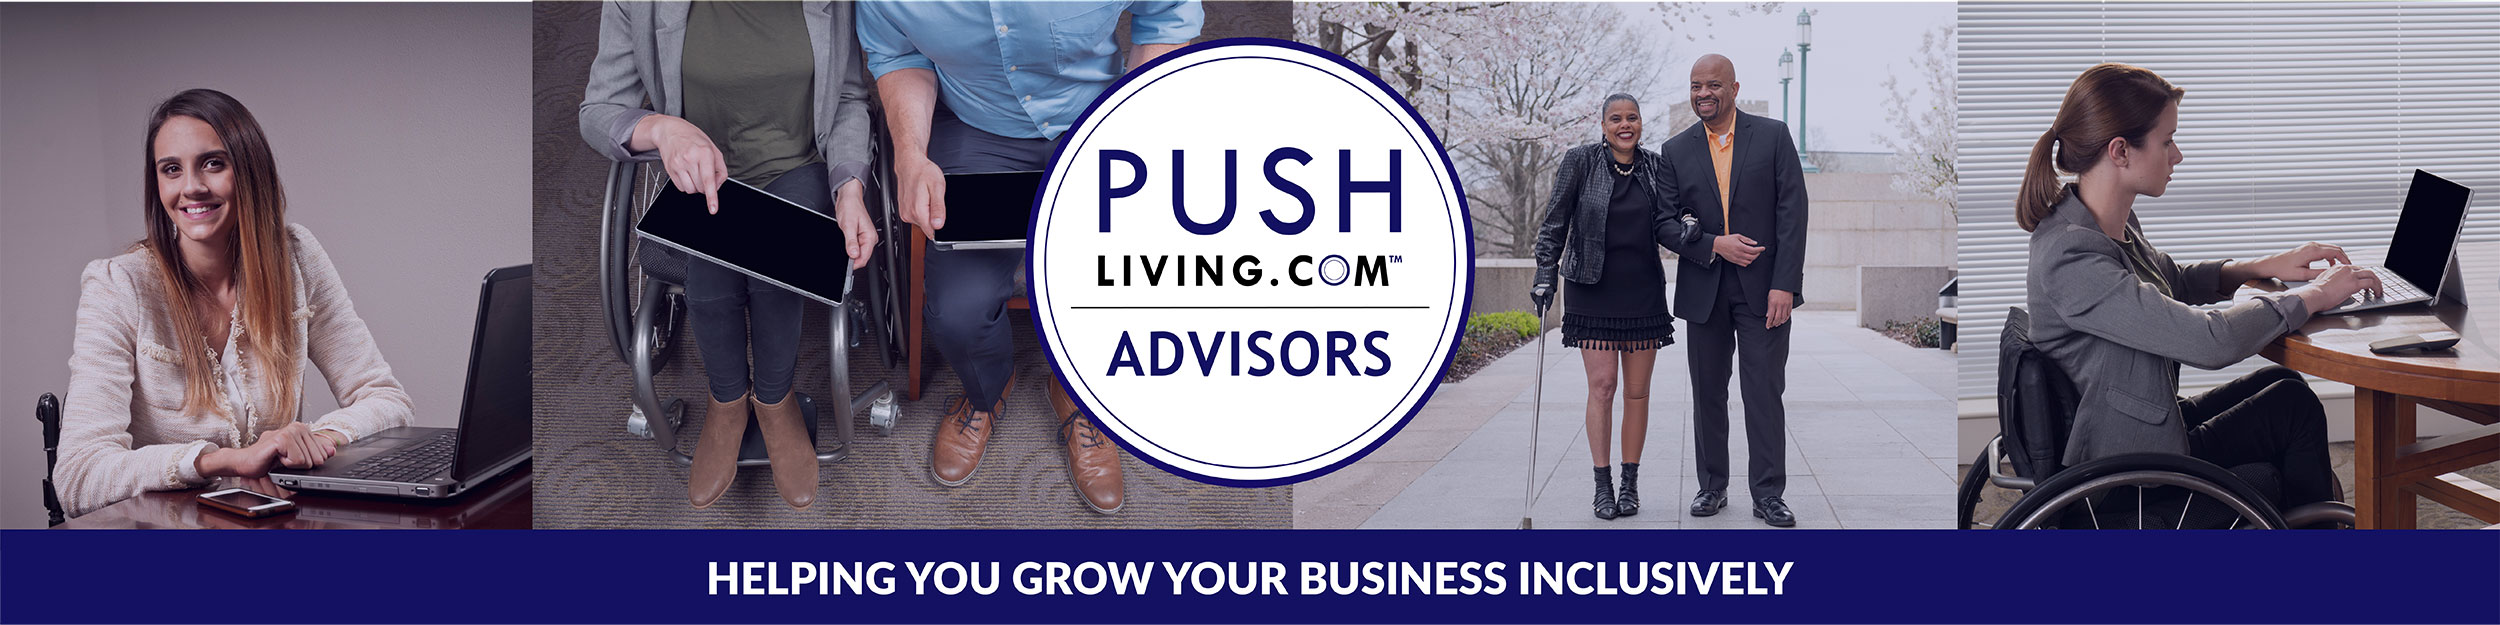 Pushliving Advisors - Helping you grow your business inclusively